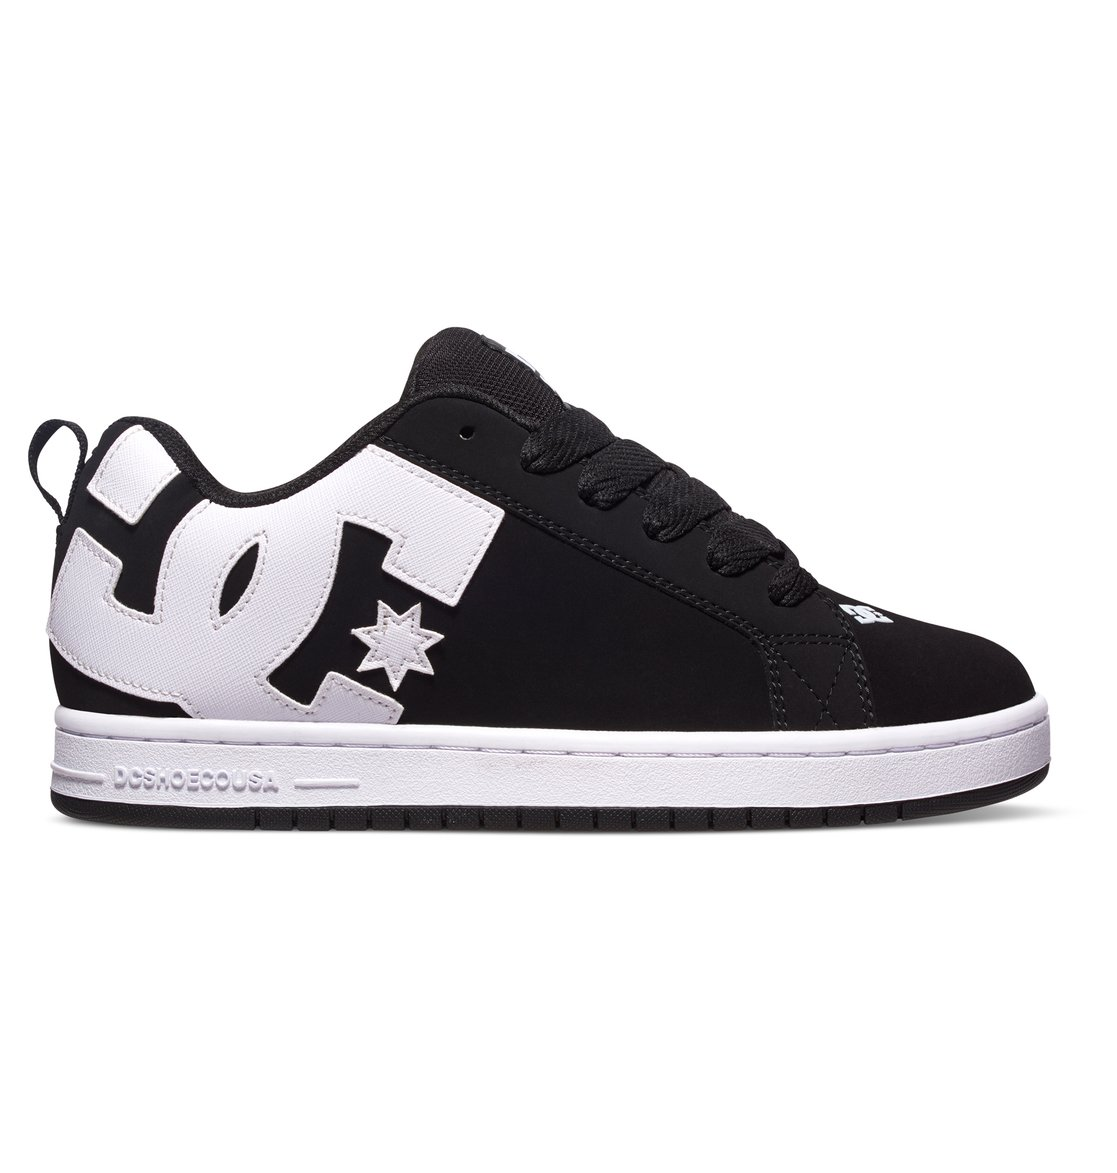 Stand out in a brand new pair of men's sneakers today. DC Shoes is a brand that enjoys pushing the envelope of what's possible as much as you do, and our collection of men's casual shoes is packed with great designs and unique styles that will keep your feet one step ahead of the crowd.